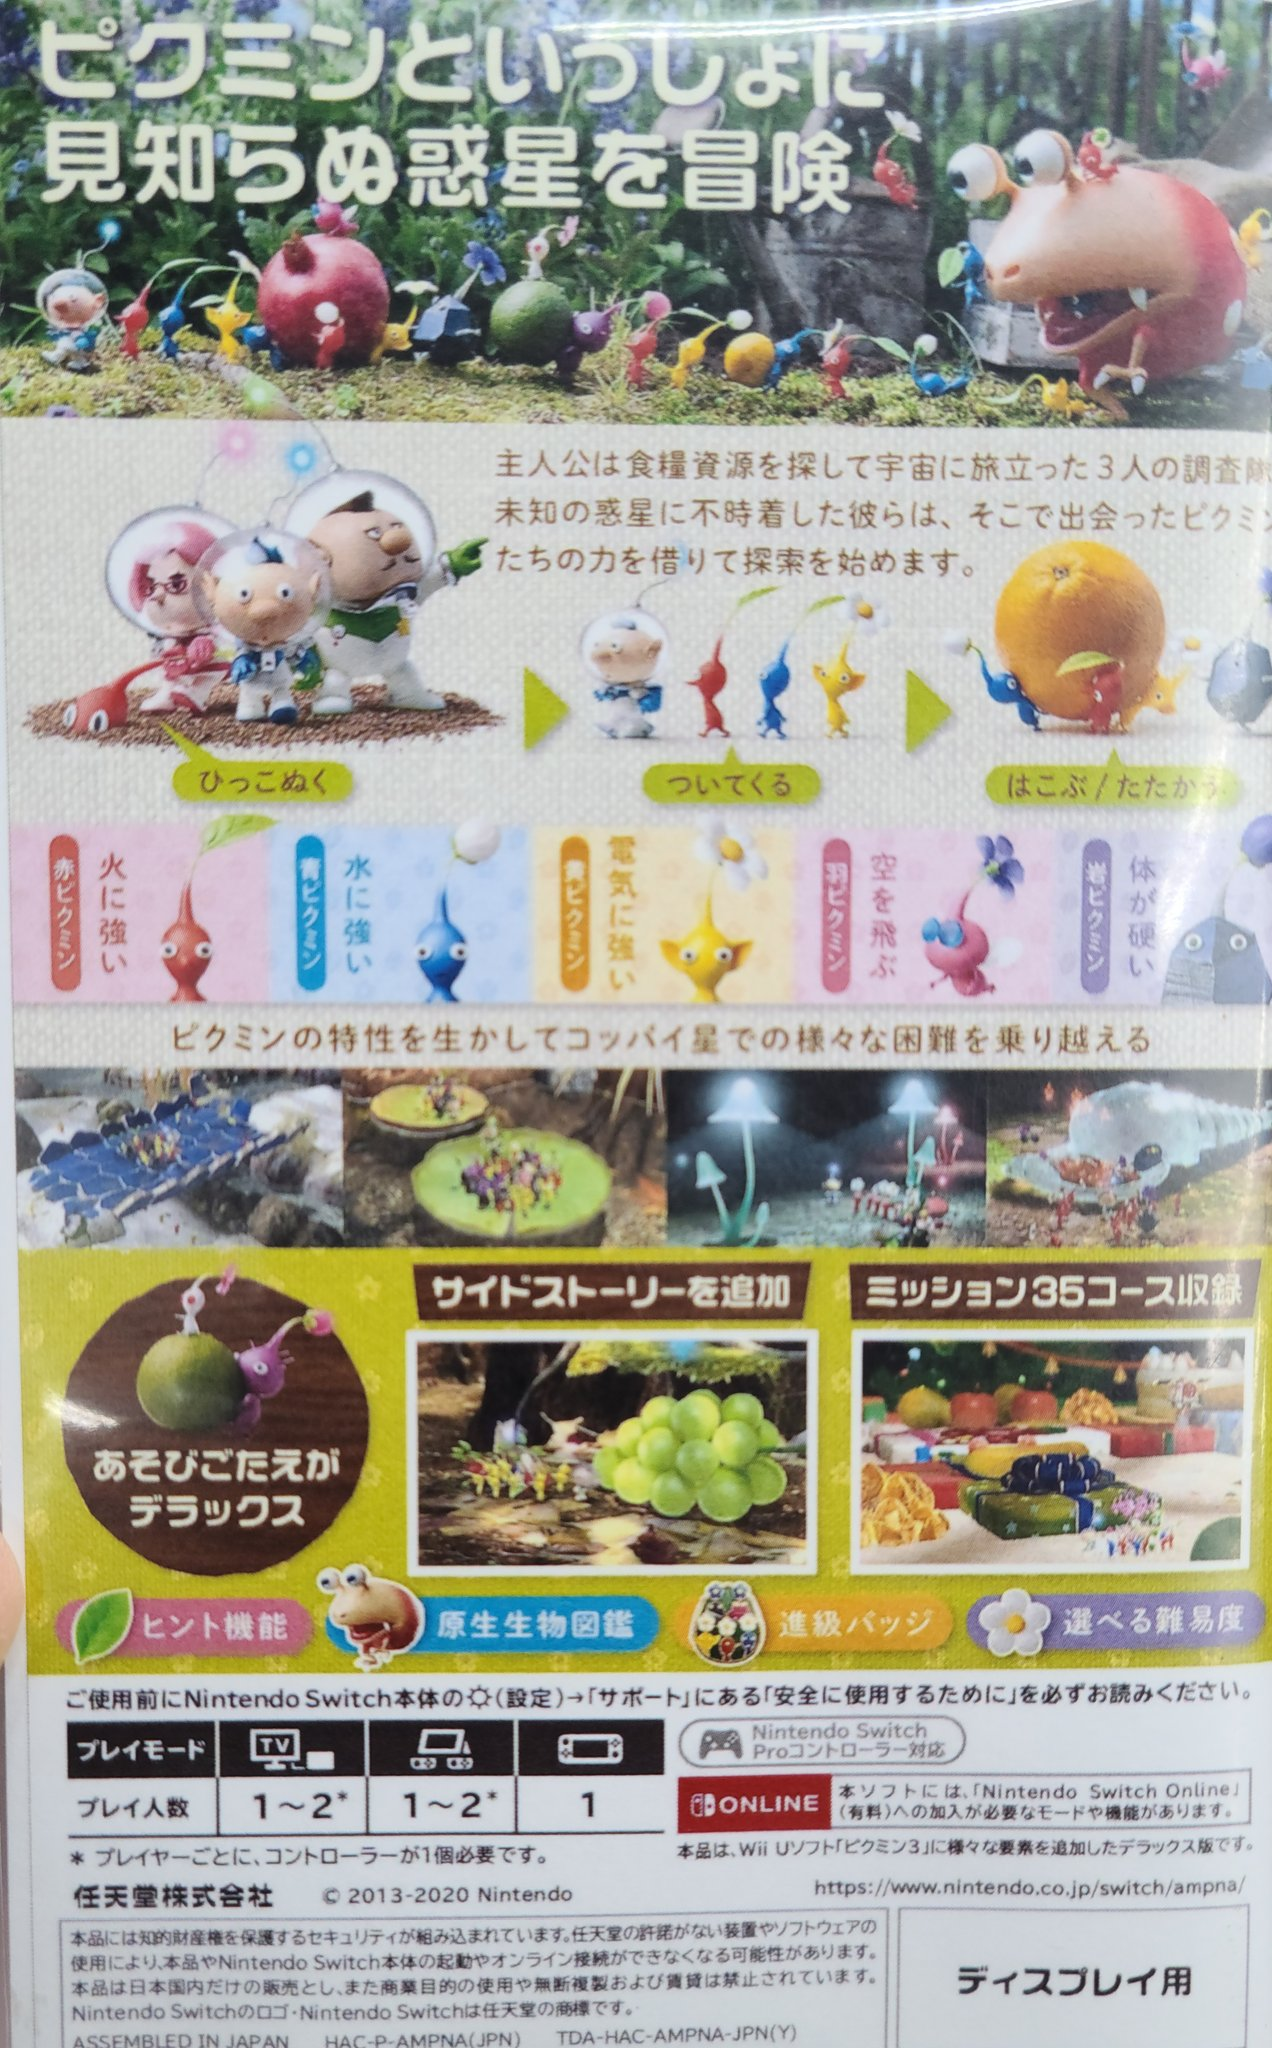 Pikmin 3 Deluxe packaging now available in Japan (picture and translation courtesy of @PushDustIn)